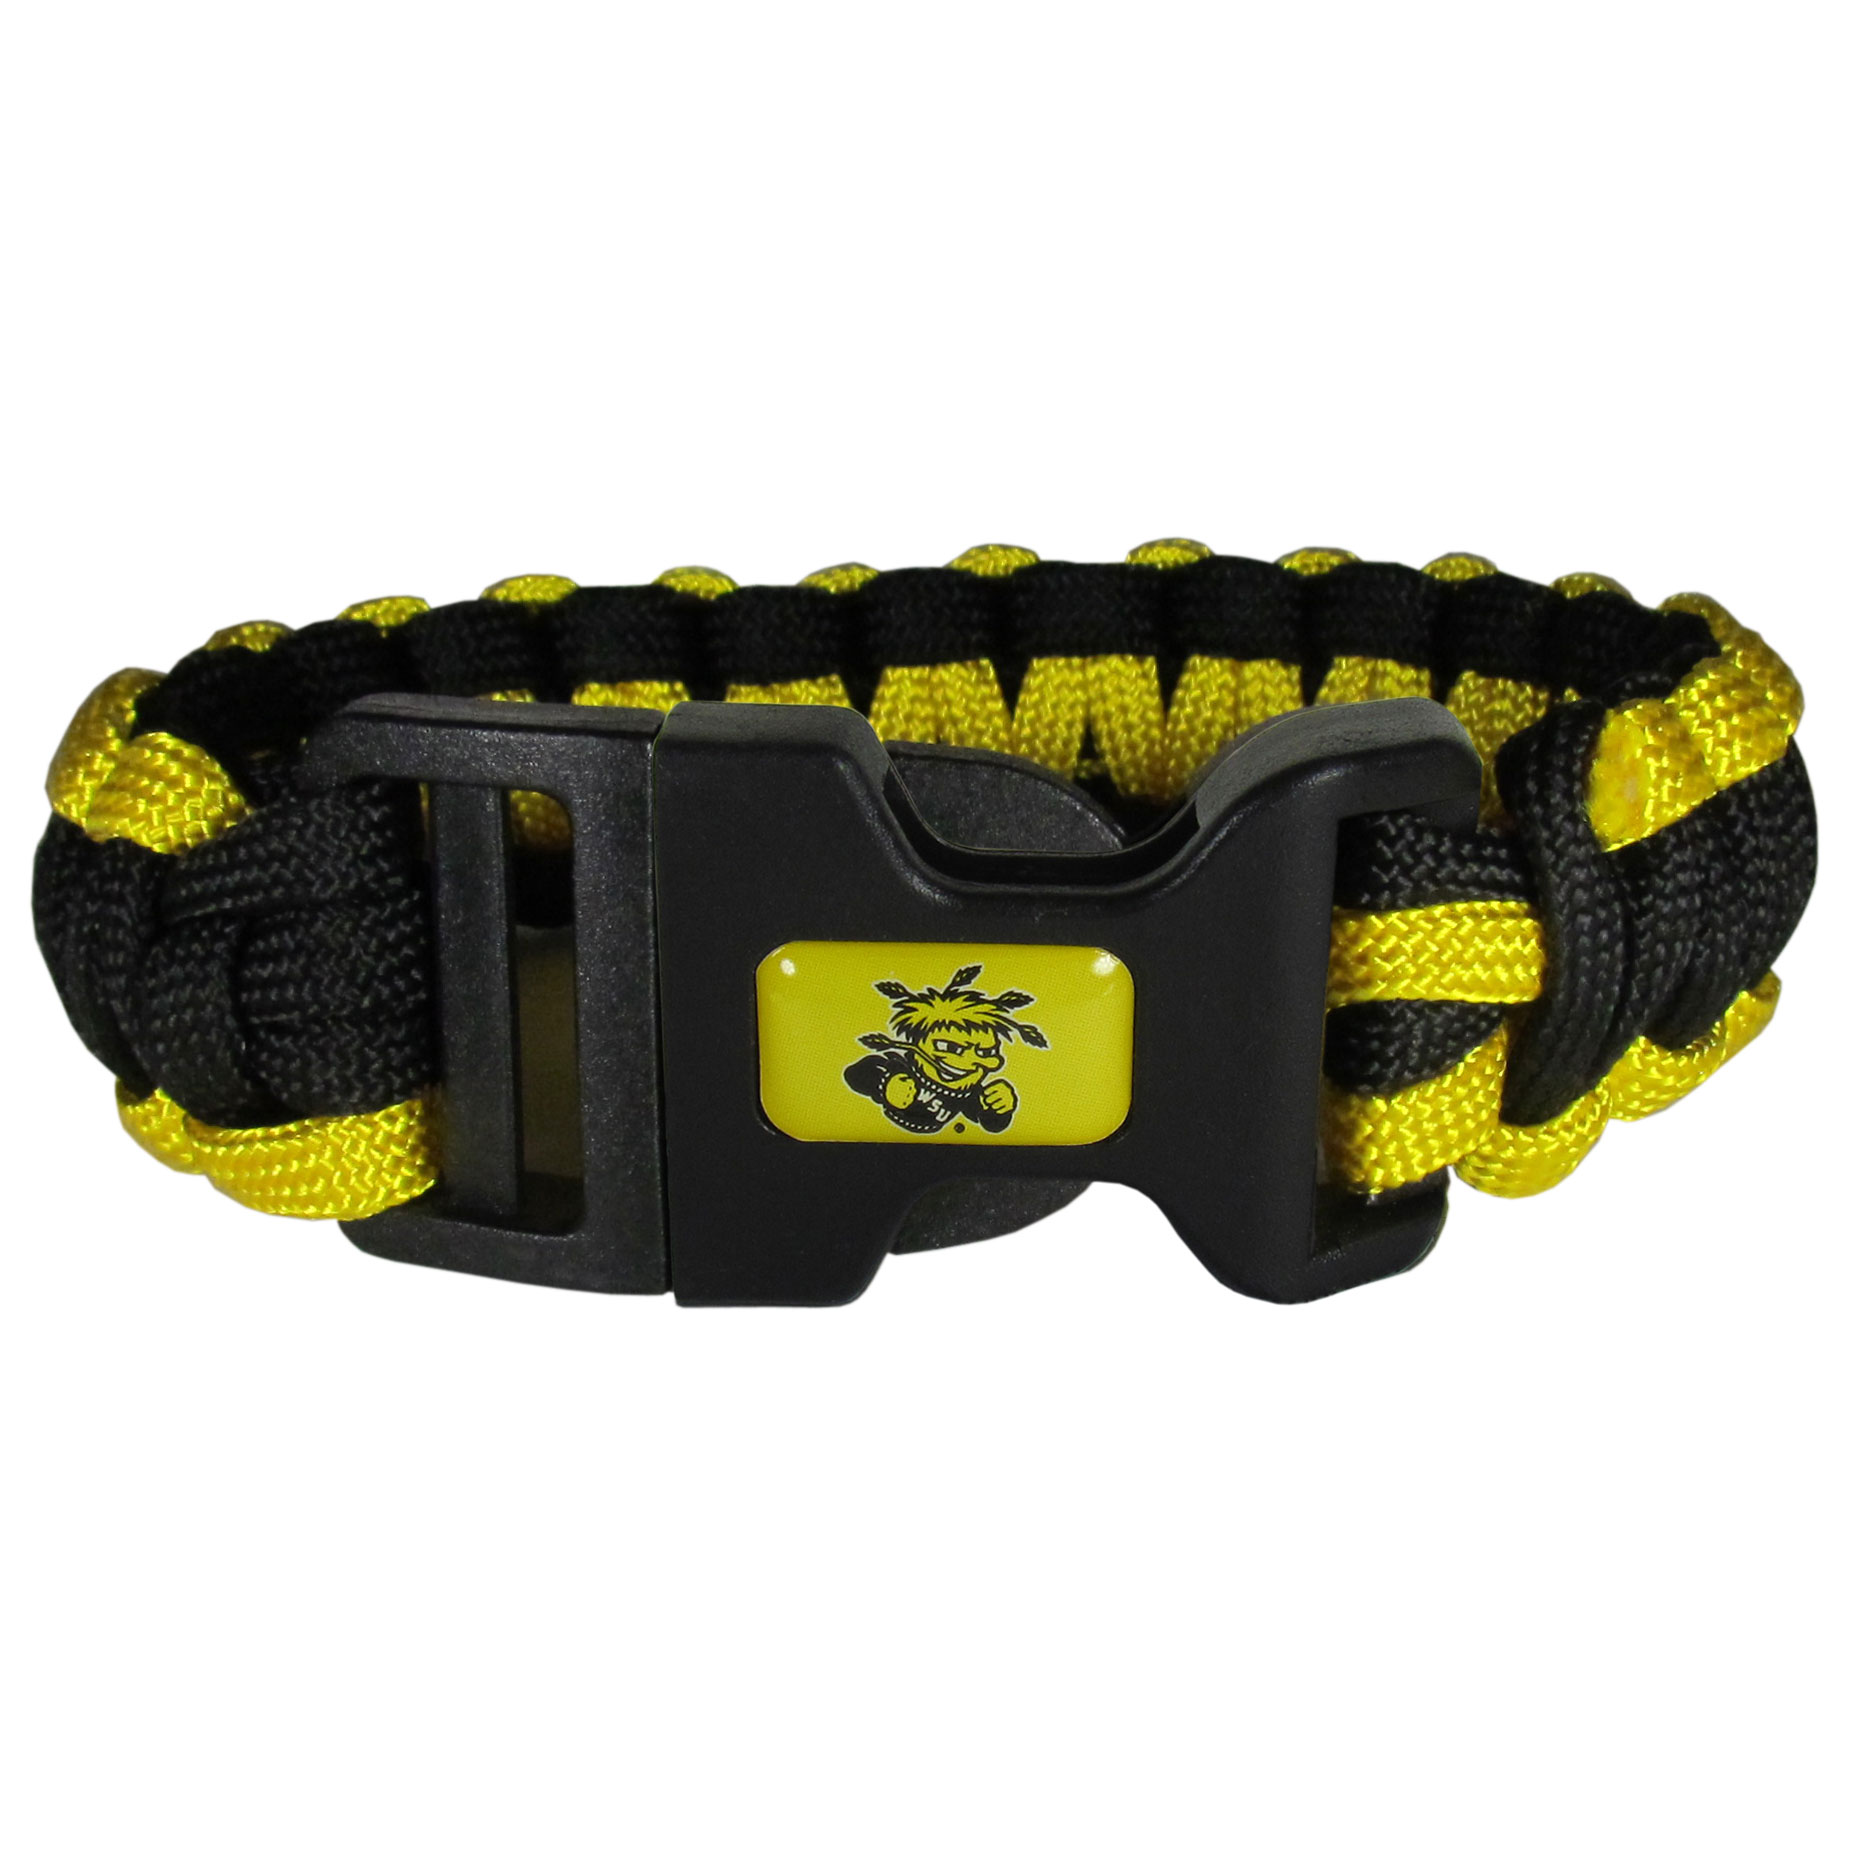 Wichita St. Shockers Survivor Bracelet - Our functional and fashionable Wichita St. Shockers survivor bracelets contain 2 individual 300lb test paracord rated cords that are each 5 feet long. The team colored cords can be pulled apart to be used in any number of emergencies and look great while worn. The bracelet features a team emblem on the clasp.